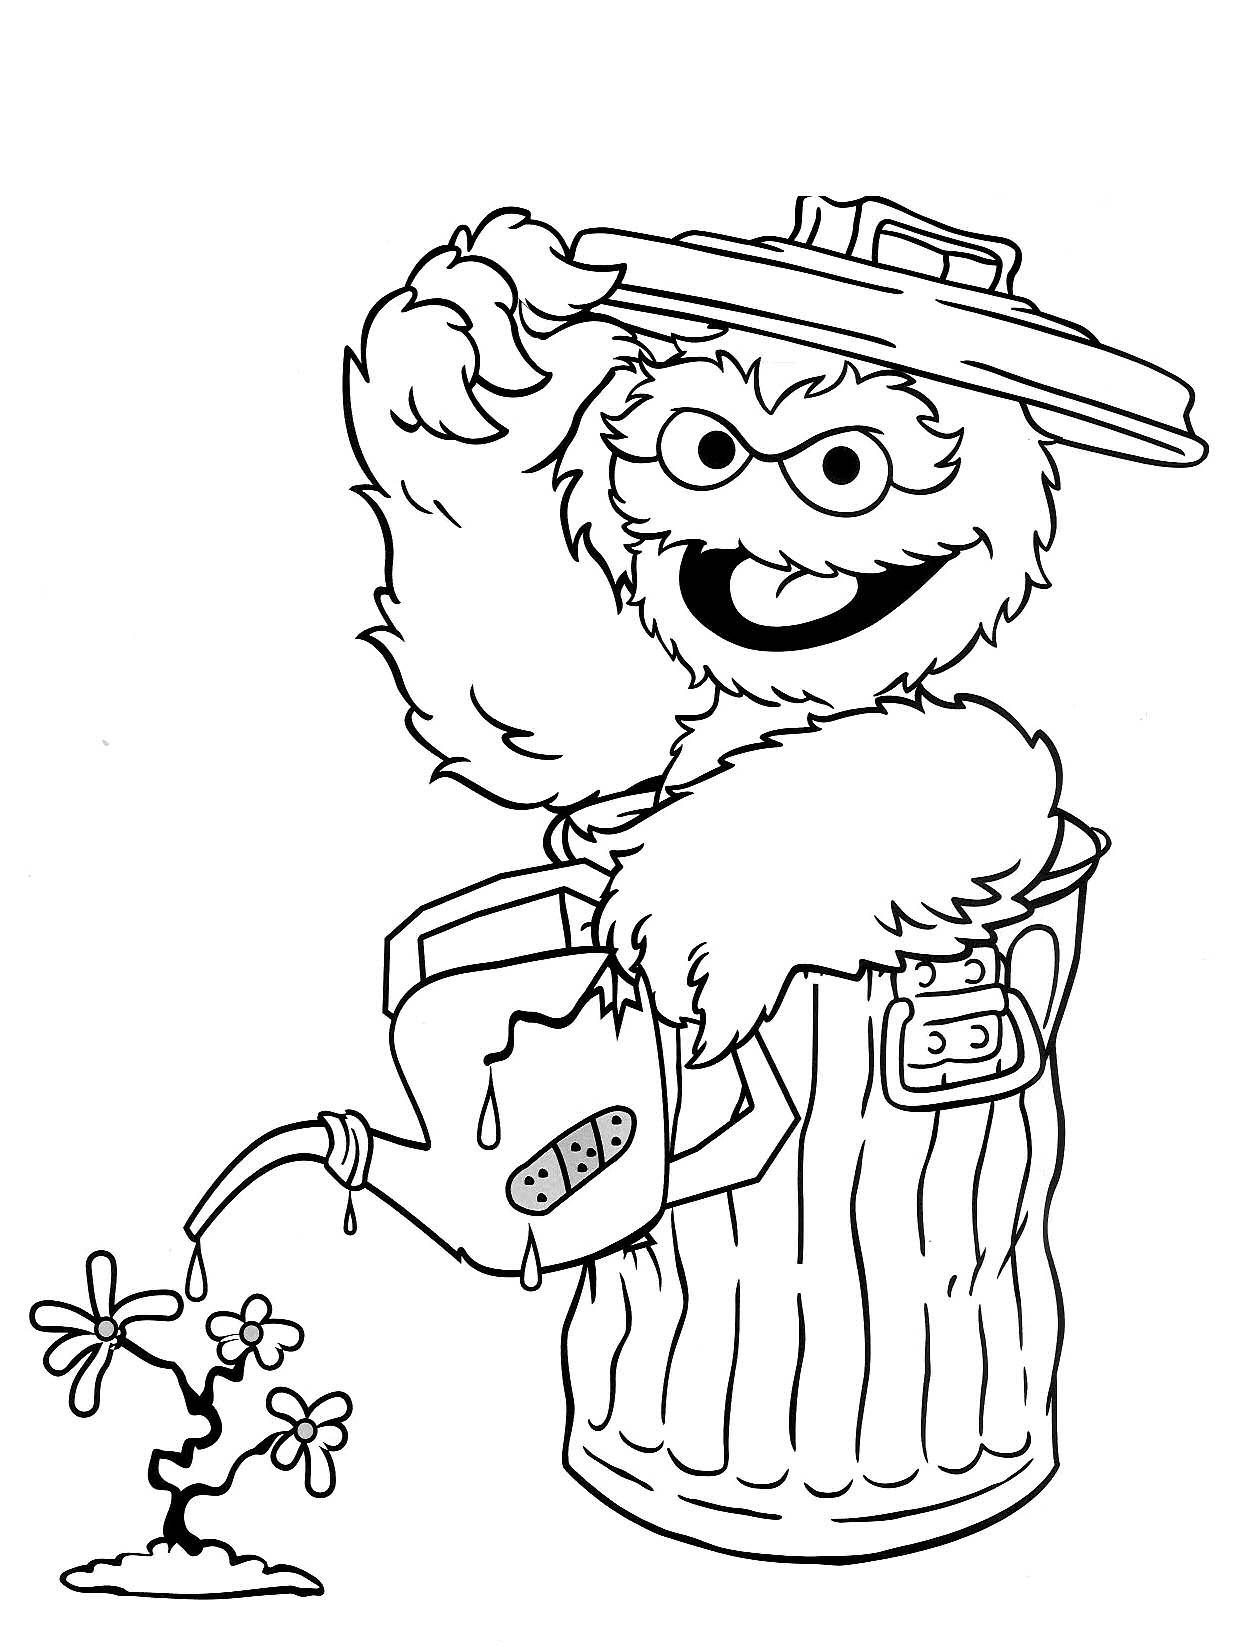 Printable Elmo Coloring Sheet Sheets For Kids